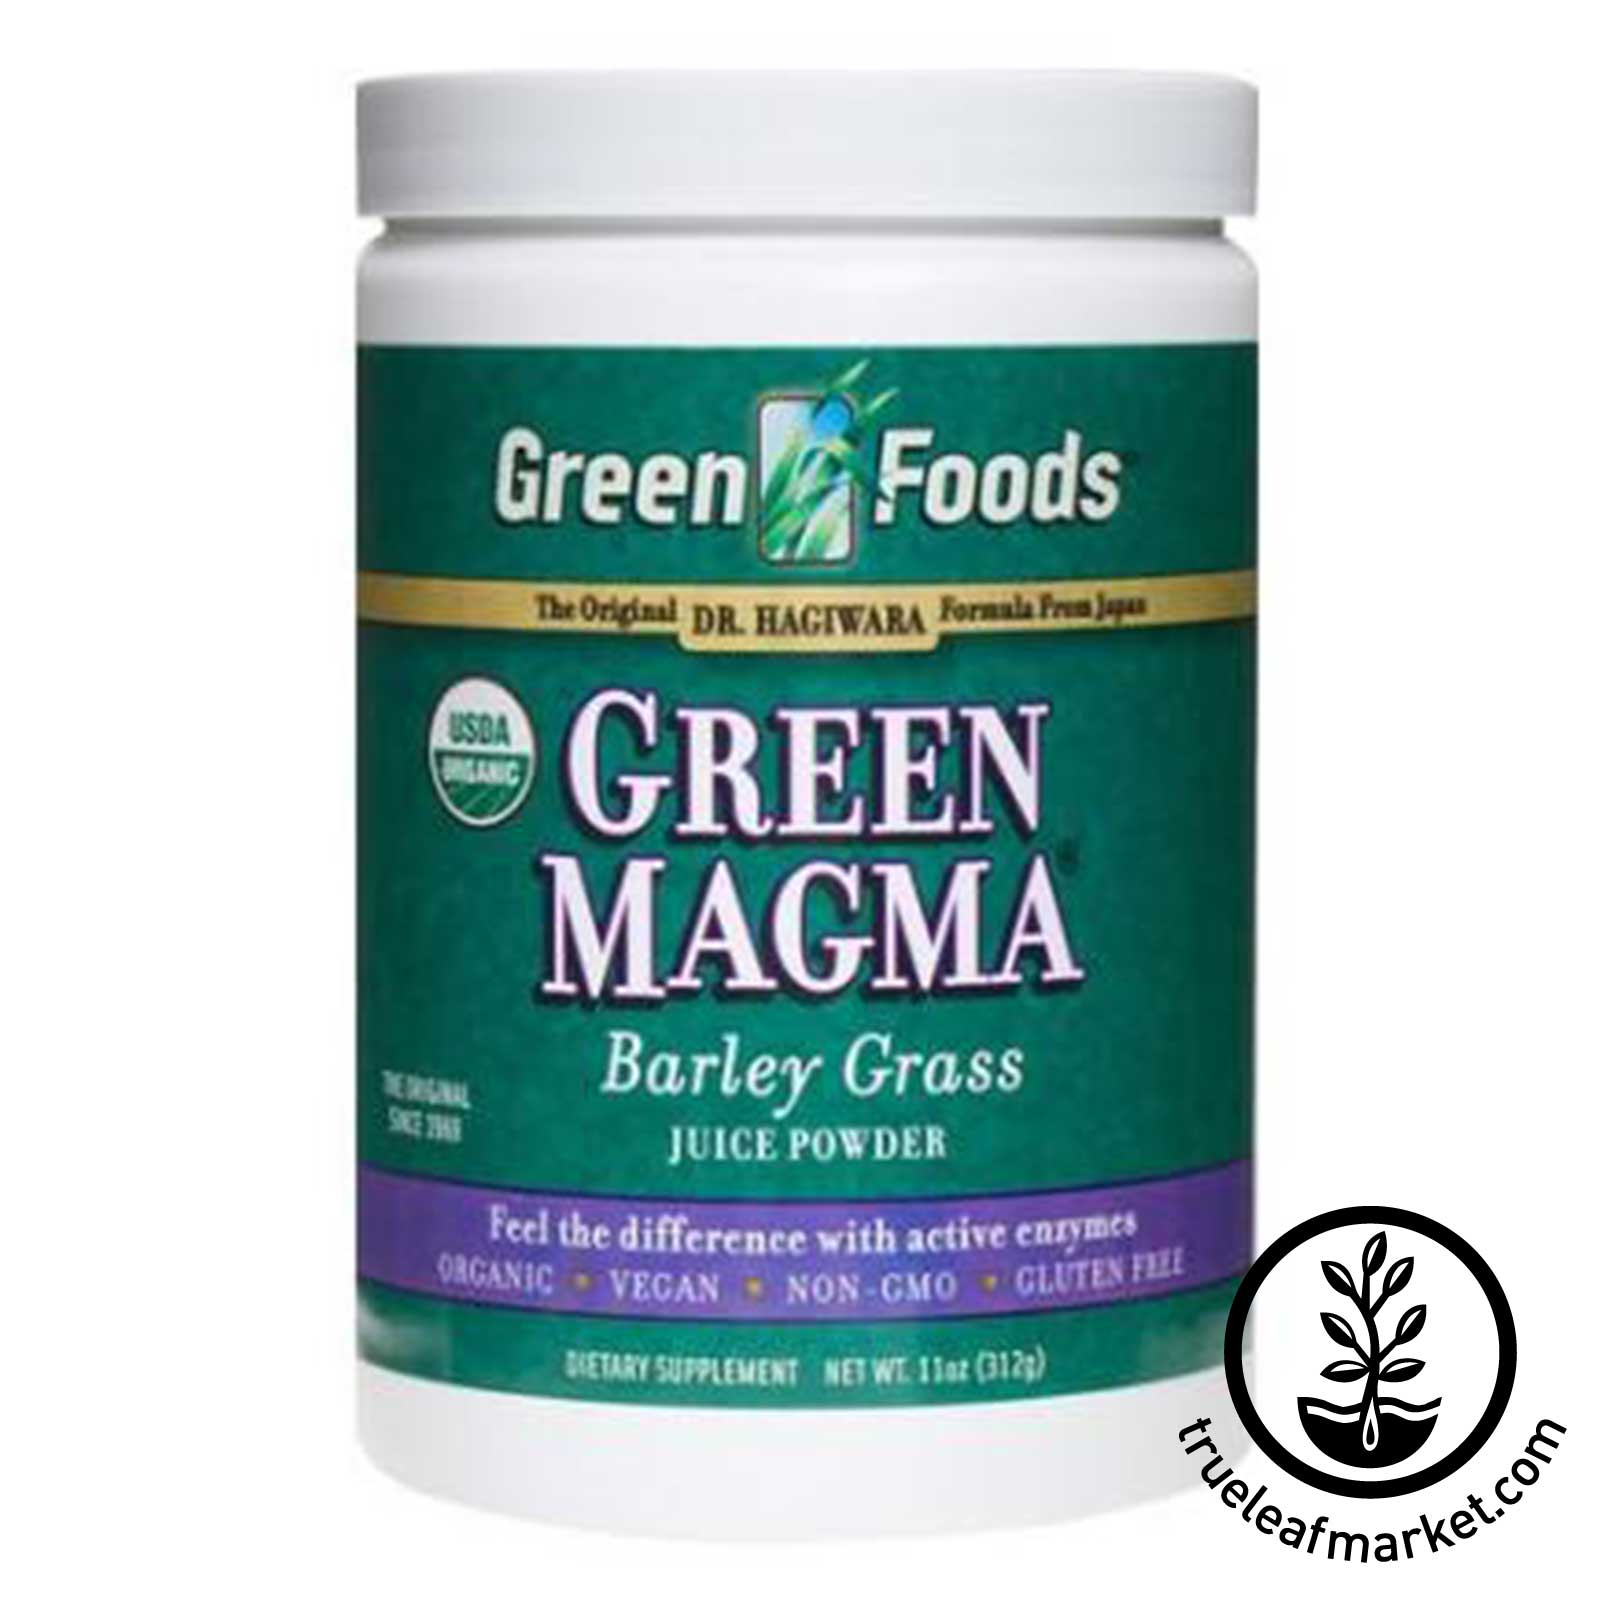 Green Foods - Green Magma - 11 Oz. - 52 Servings